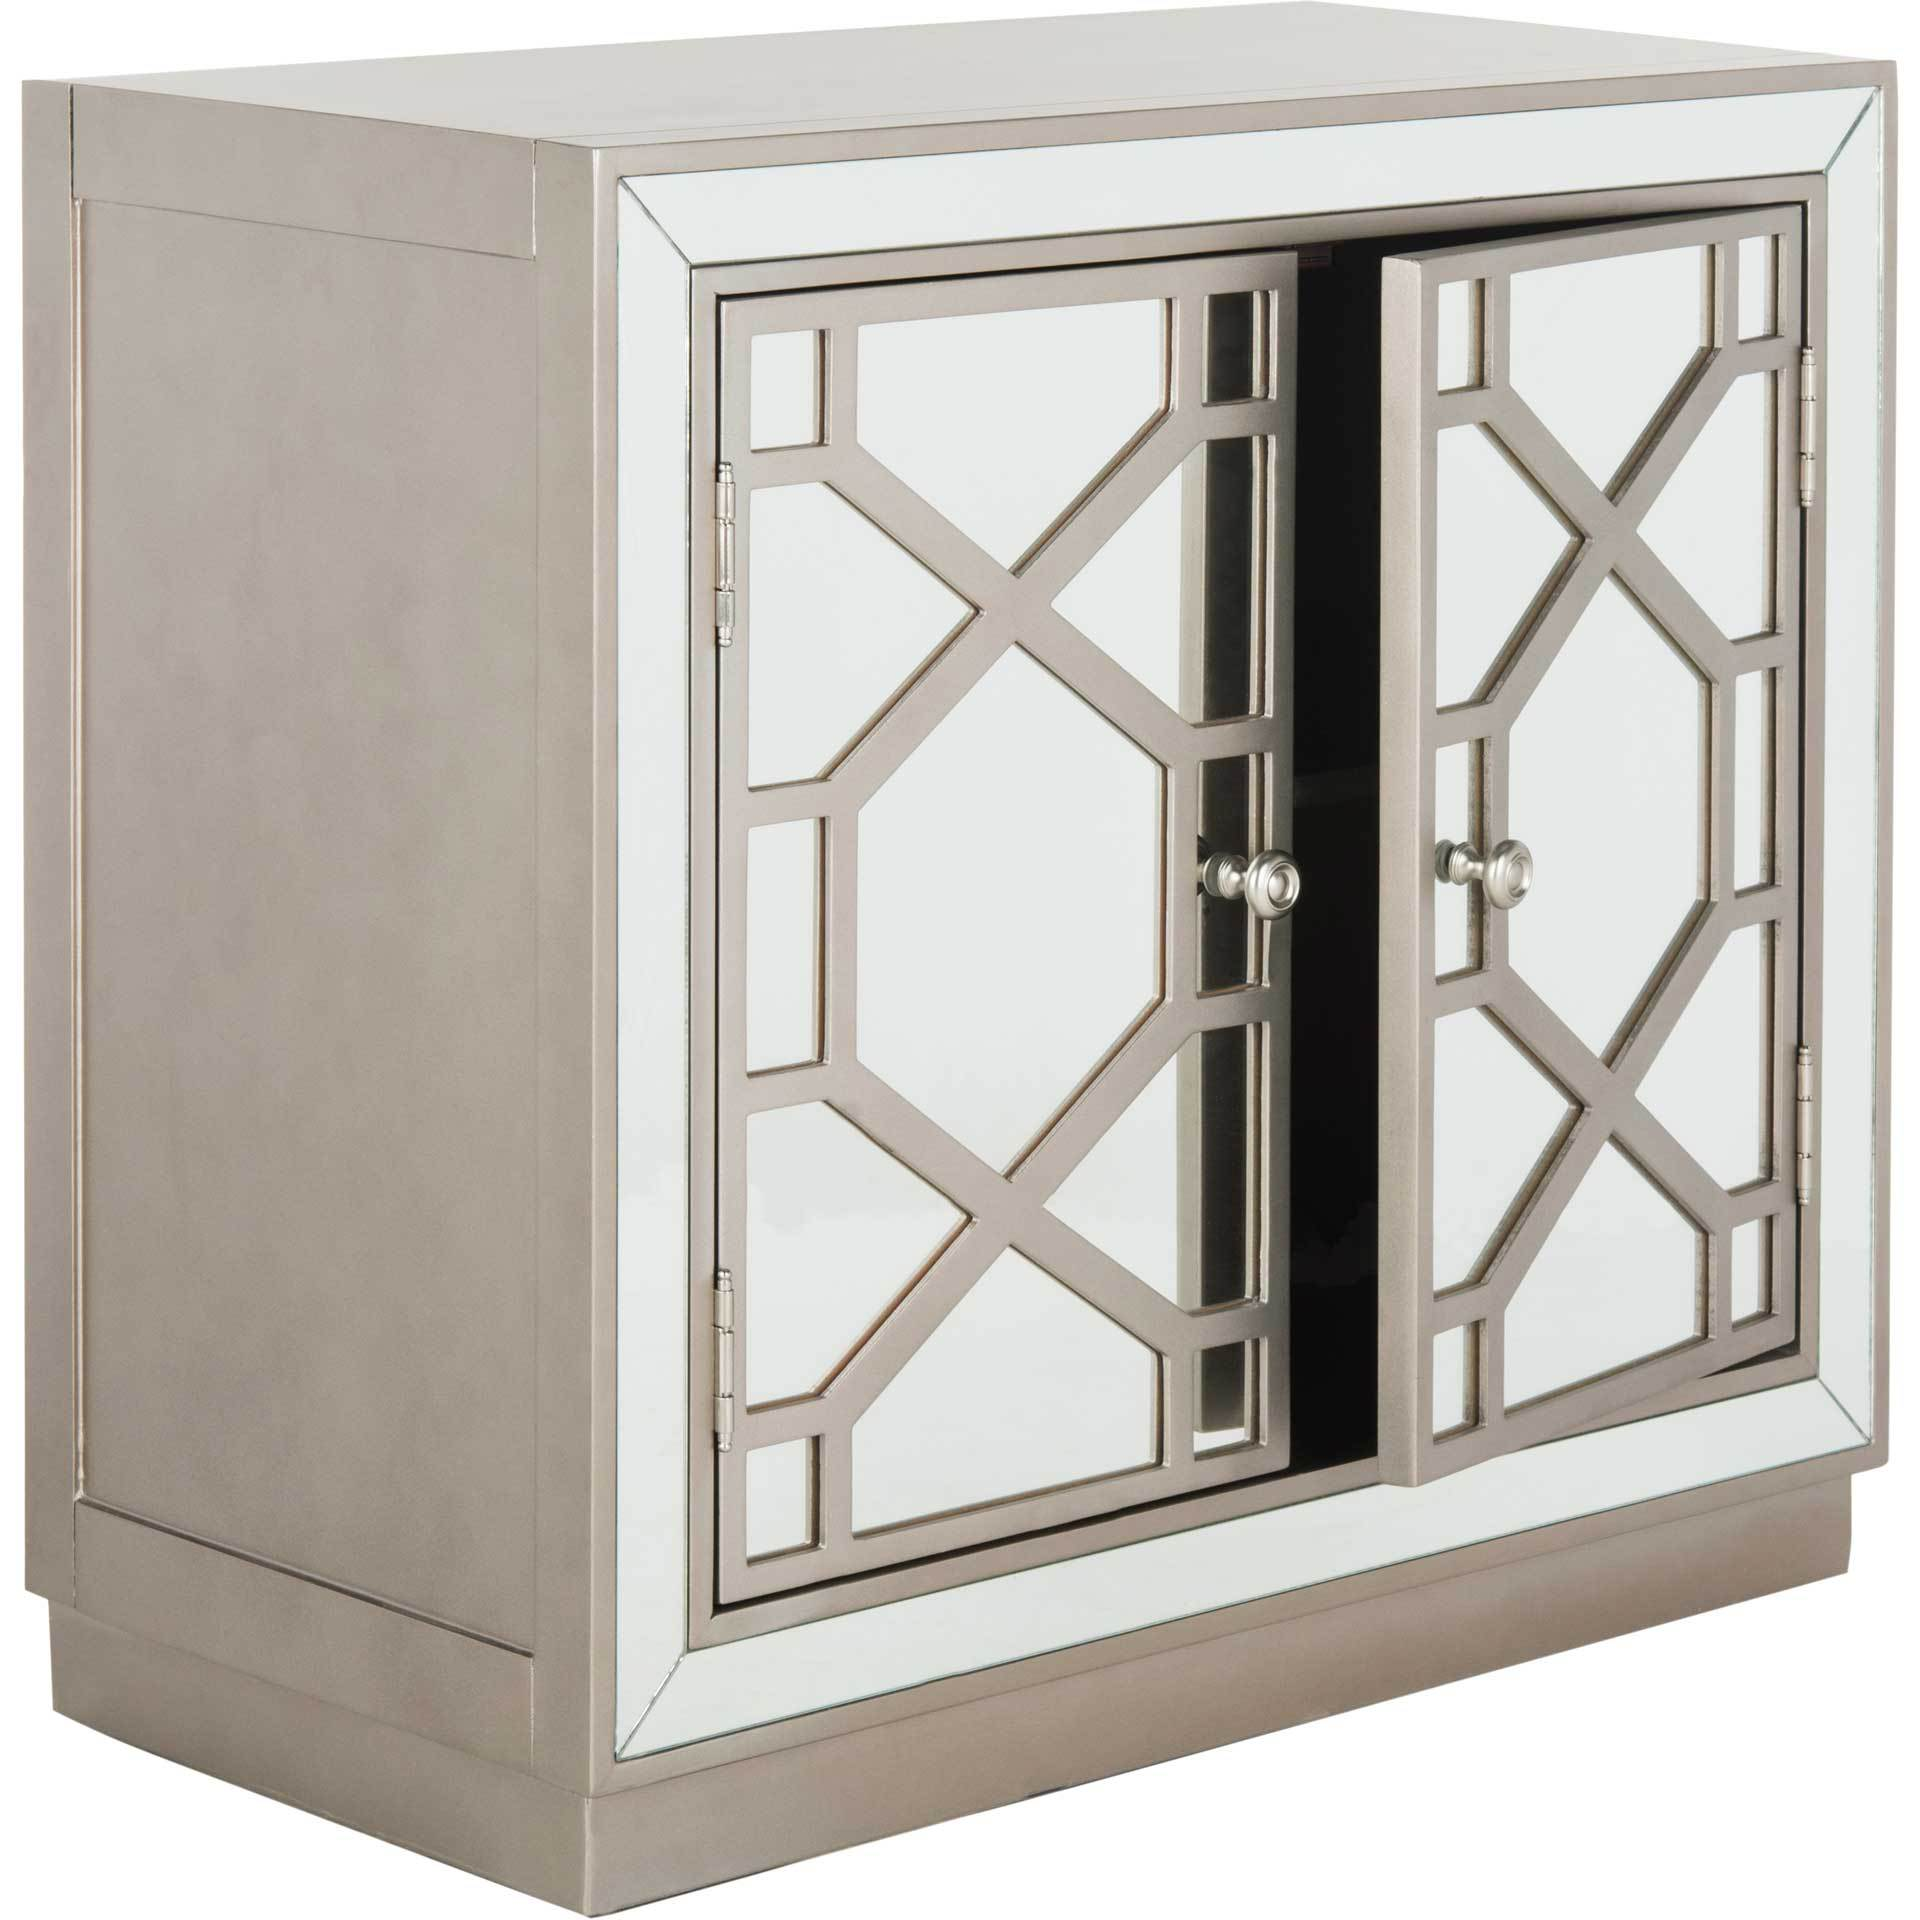 Julio 2 Door Chest Champagne/Nickel/Mirror